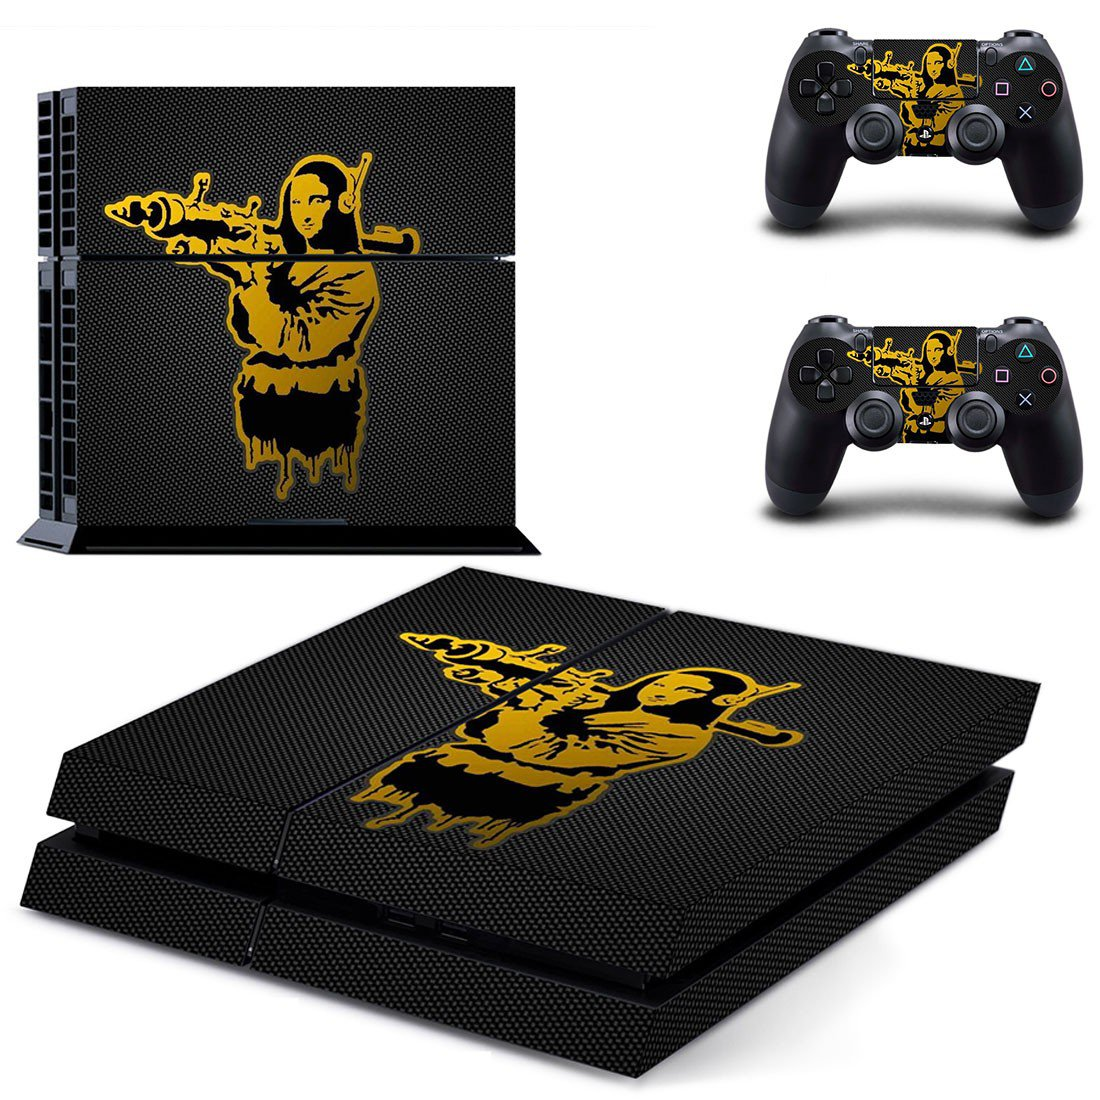 Mona lisa with bazooka decal skin sticker for PS4 console and controllers